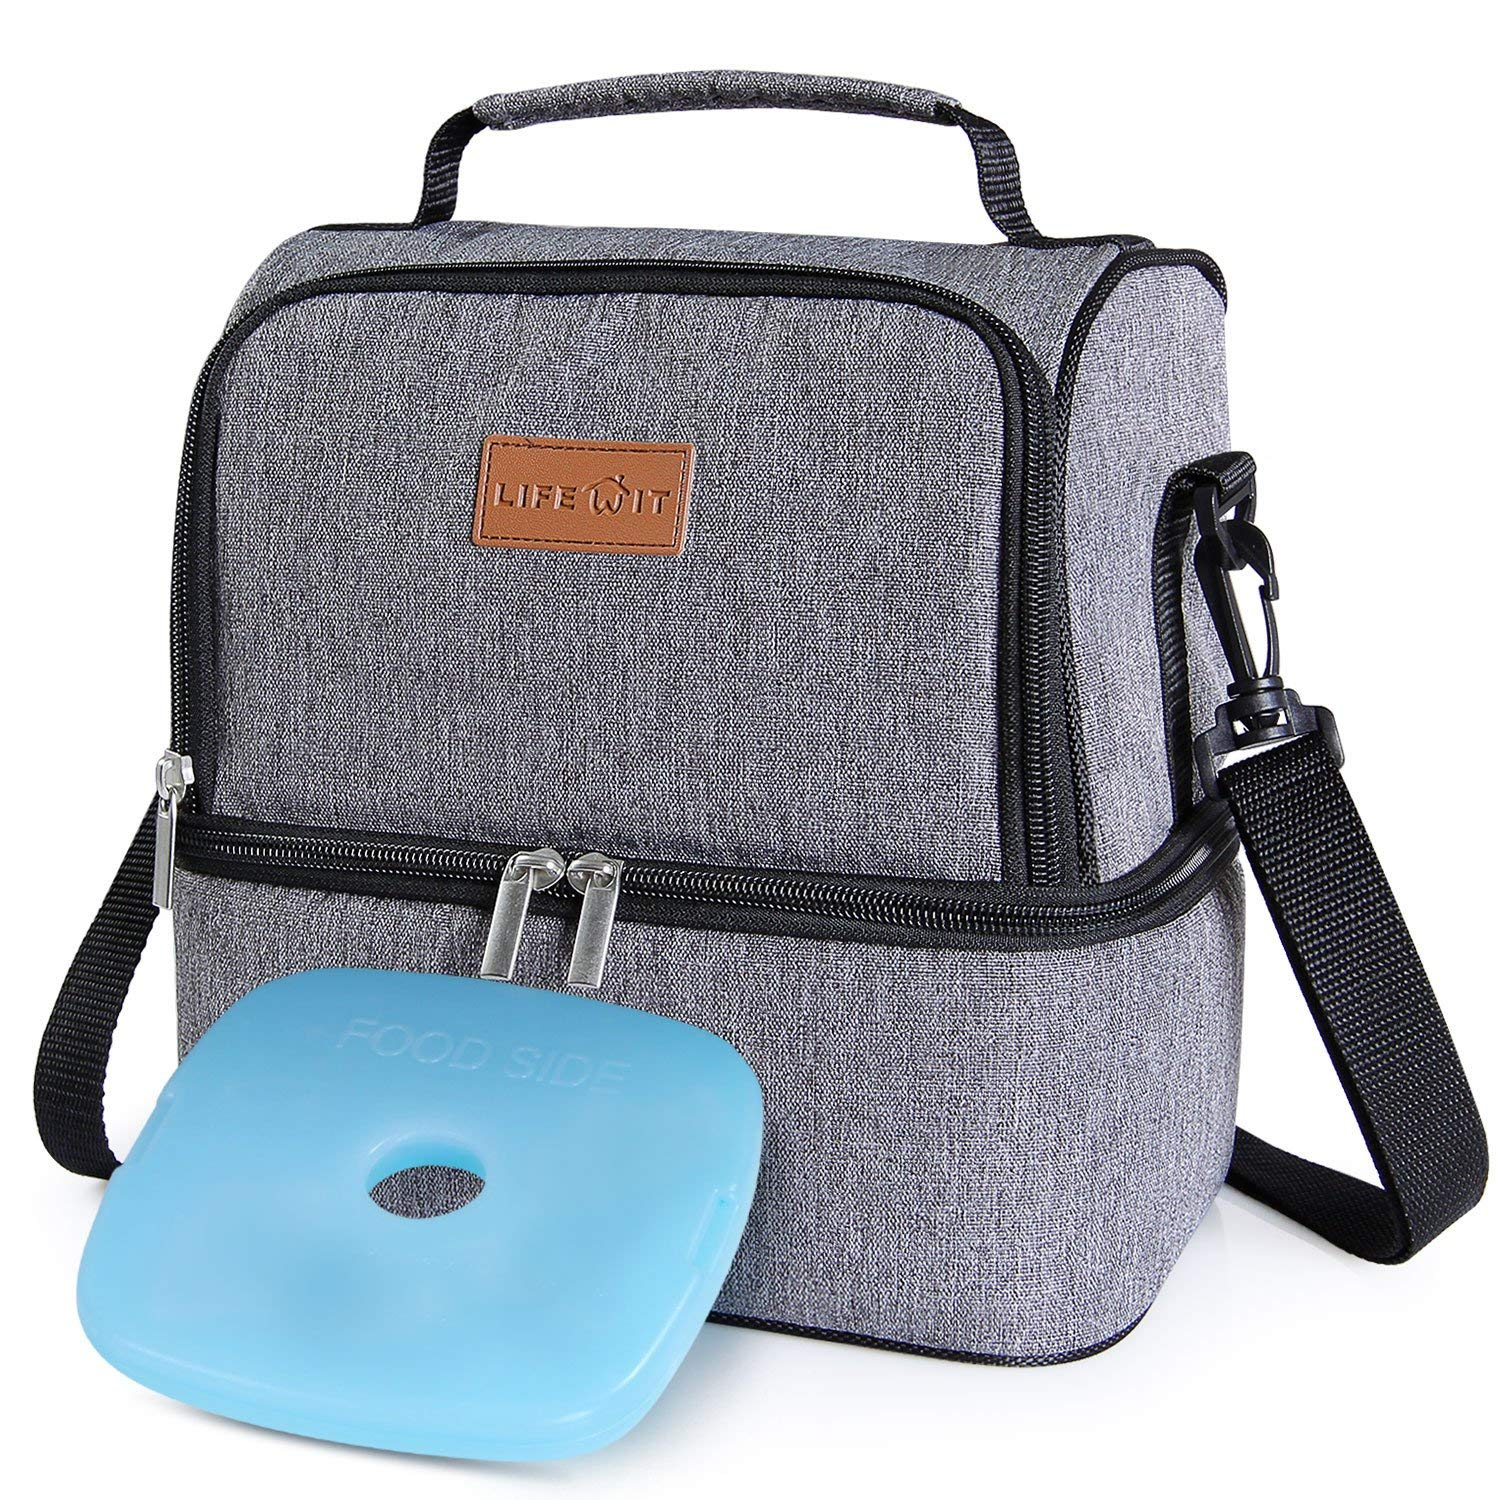 Lifewit 2 Compartment Lunch Box Insulated Lunch Bag Leakproof Thermal Bento Bag for Adults Men Women, 7L, Grey by Lifewit